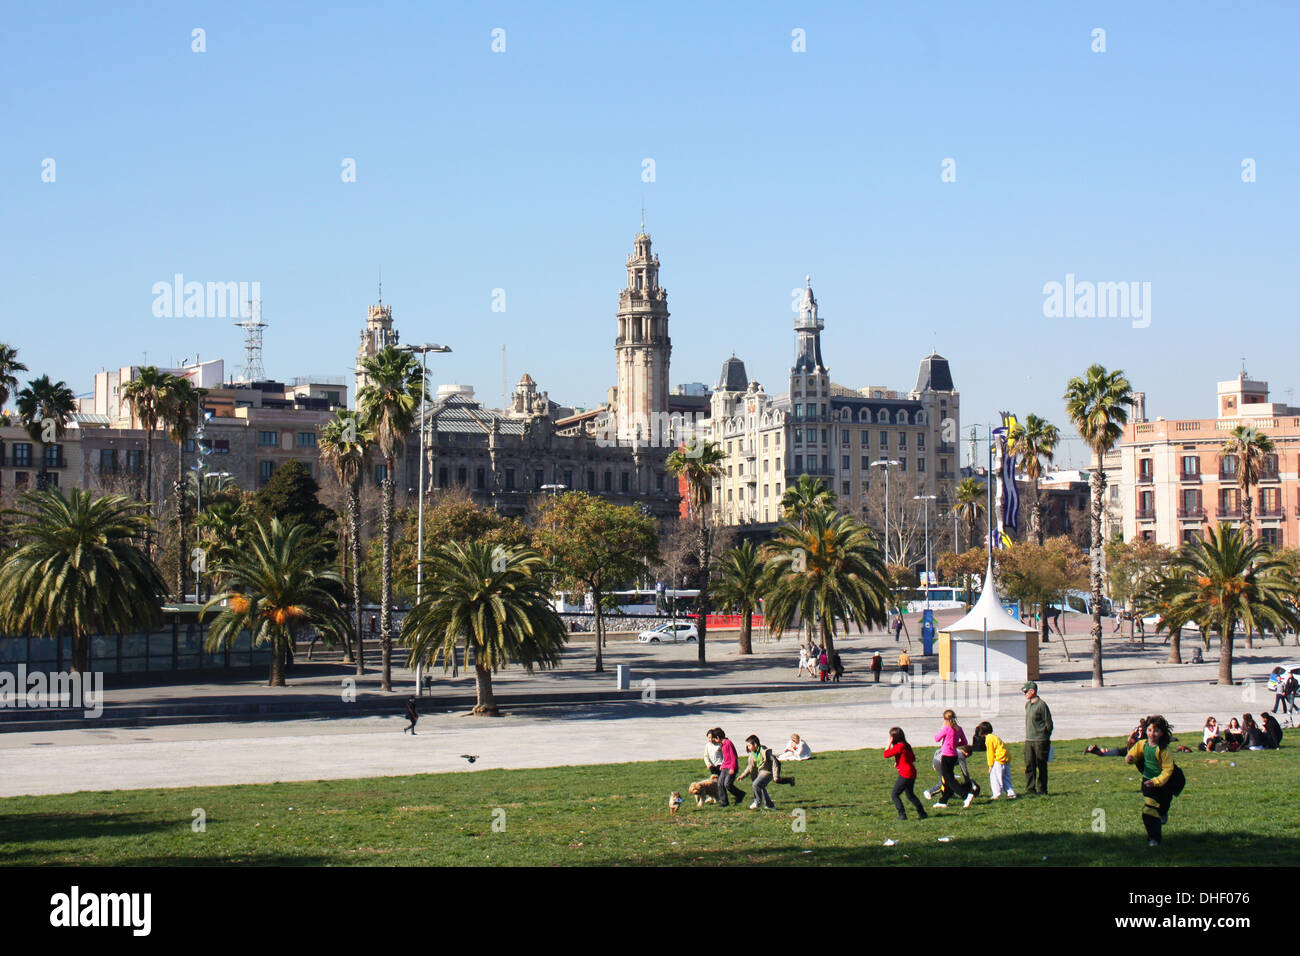 Children playing on green field in Barcelona, Spain Stock Photo